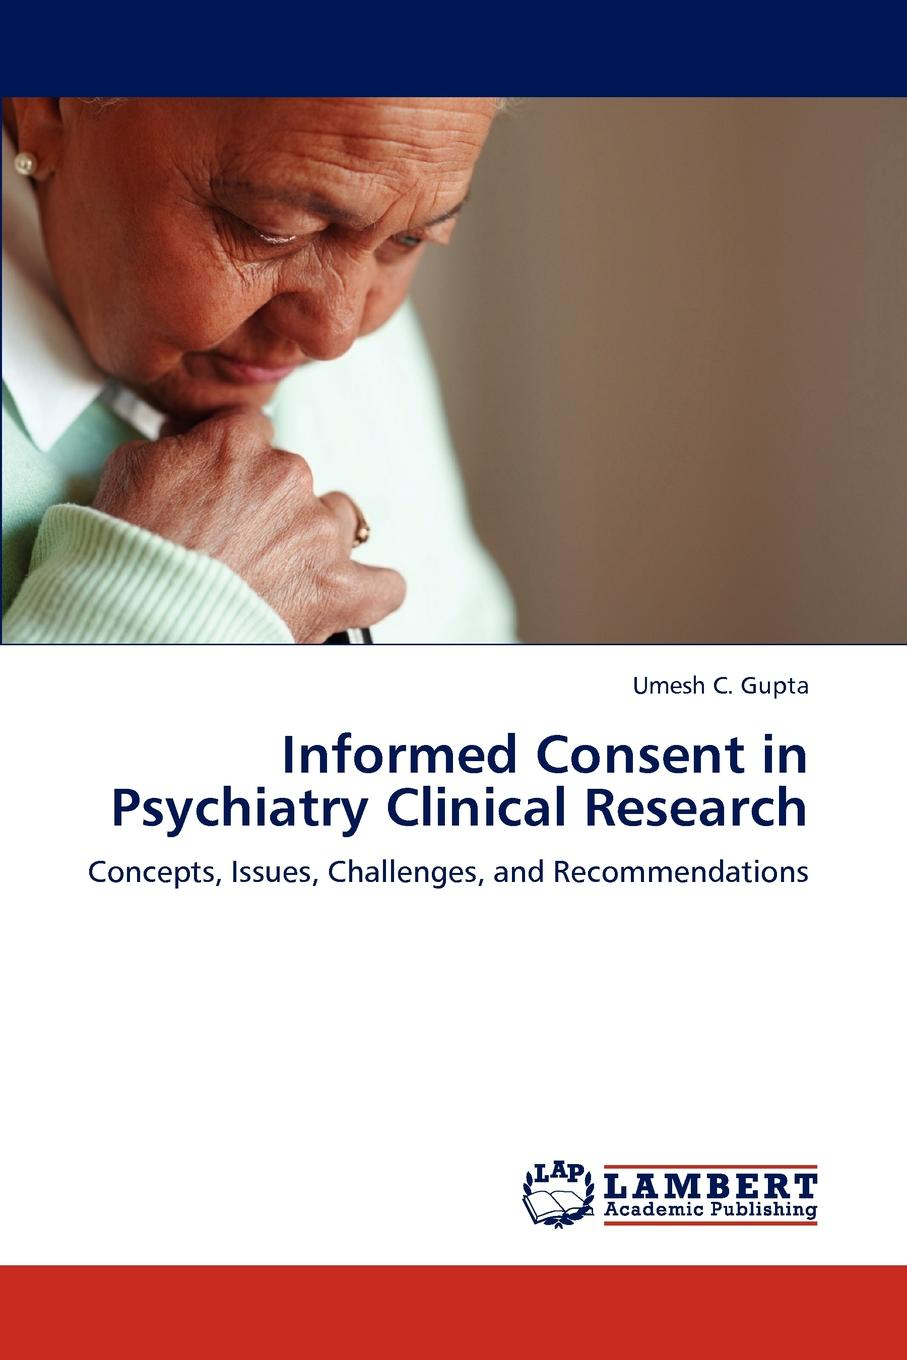 Umesh C. Gupta Informed Consent in Psychiatry Clinical Research kay jerald clinical child psychiatry